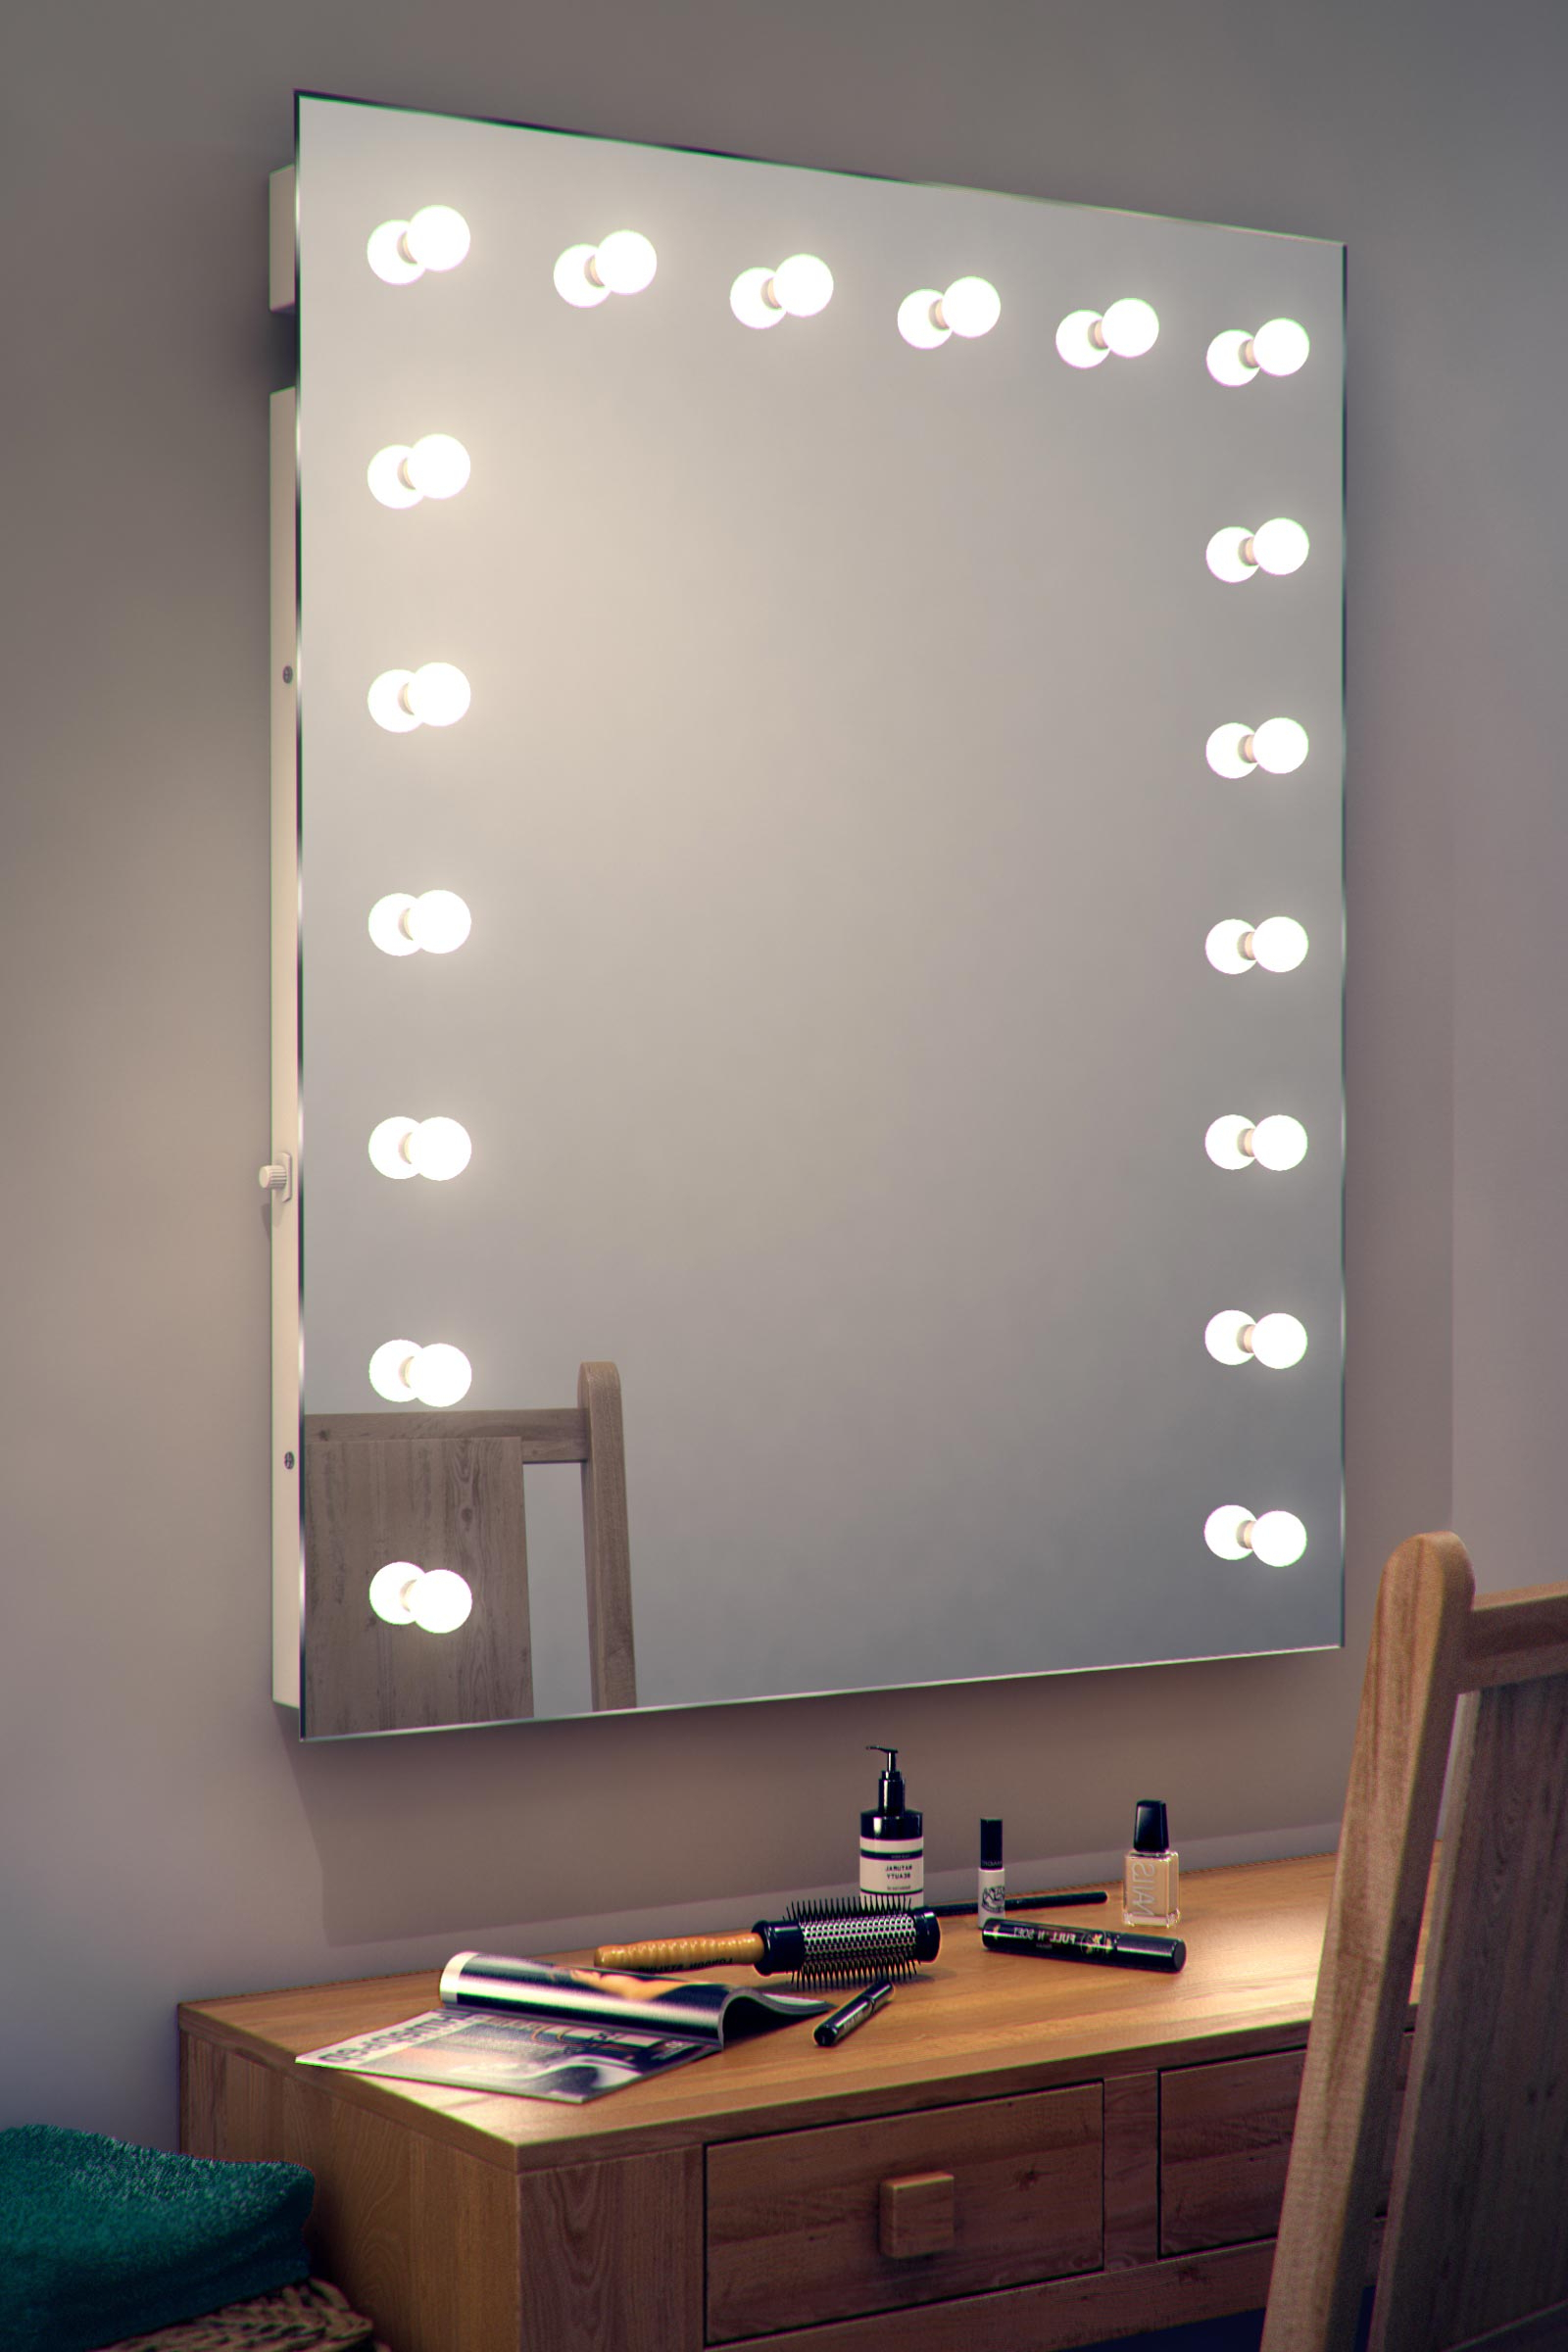 Magnificent Mirror With Lights Around It – Kiakiyo In Most Up To Date Lighted Vanity Wall Mirrors (View 12 of 20)